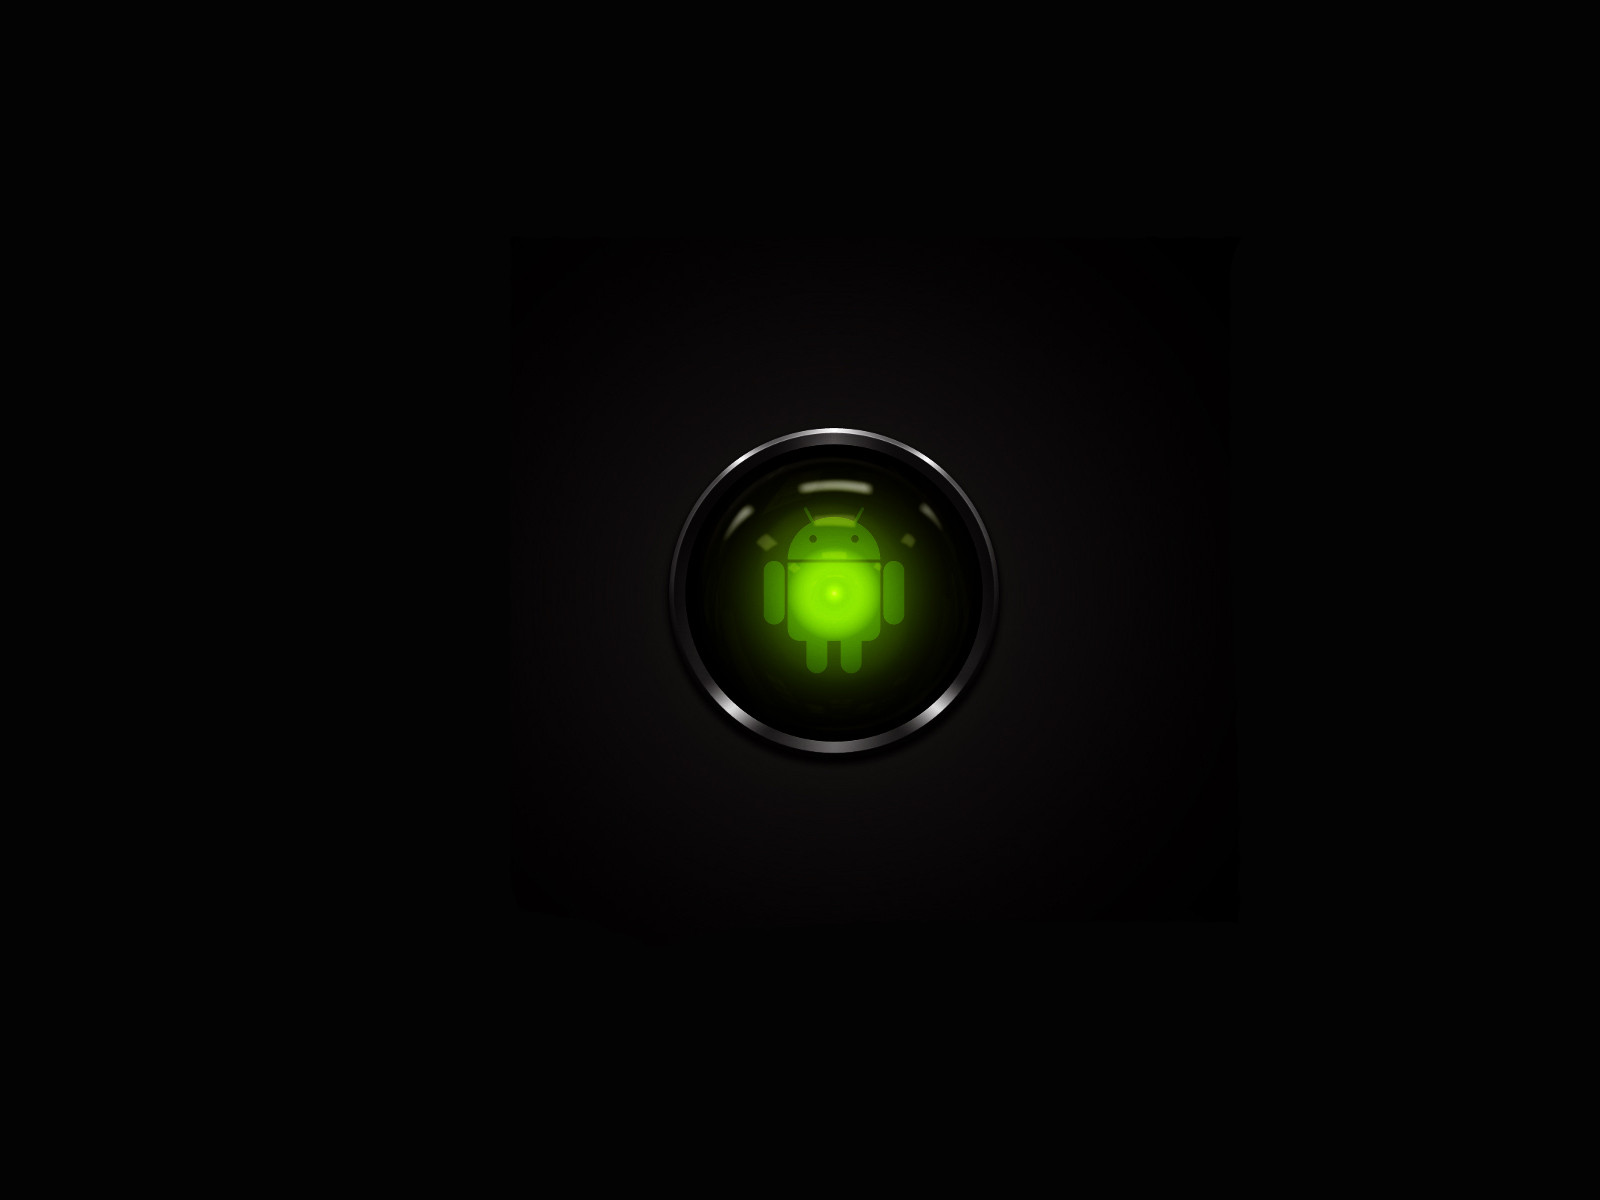 green android 1600x1200 4944 android wallpapers hd black background